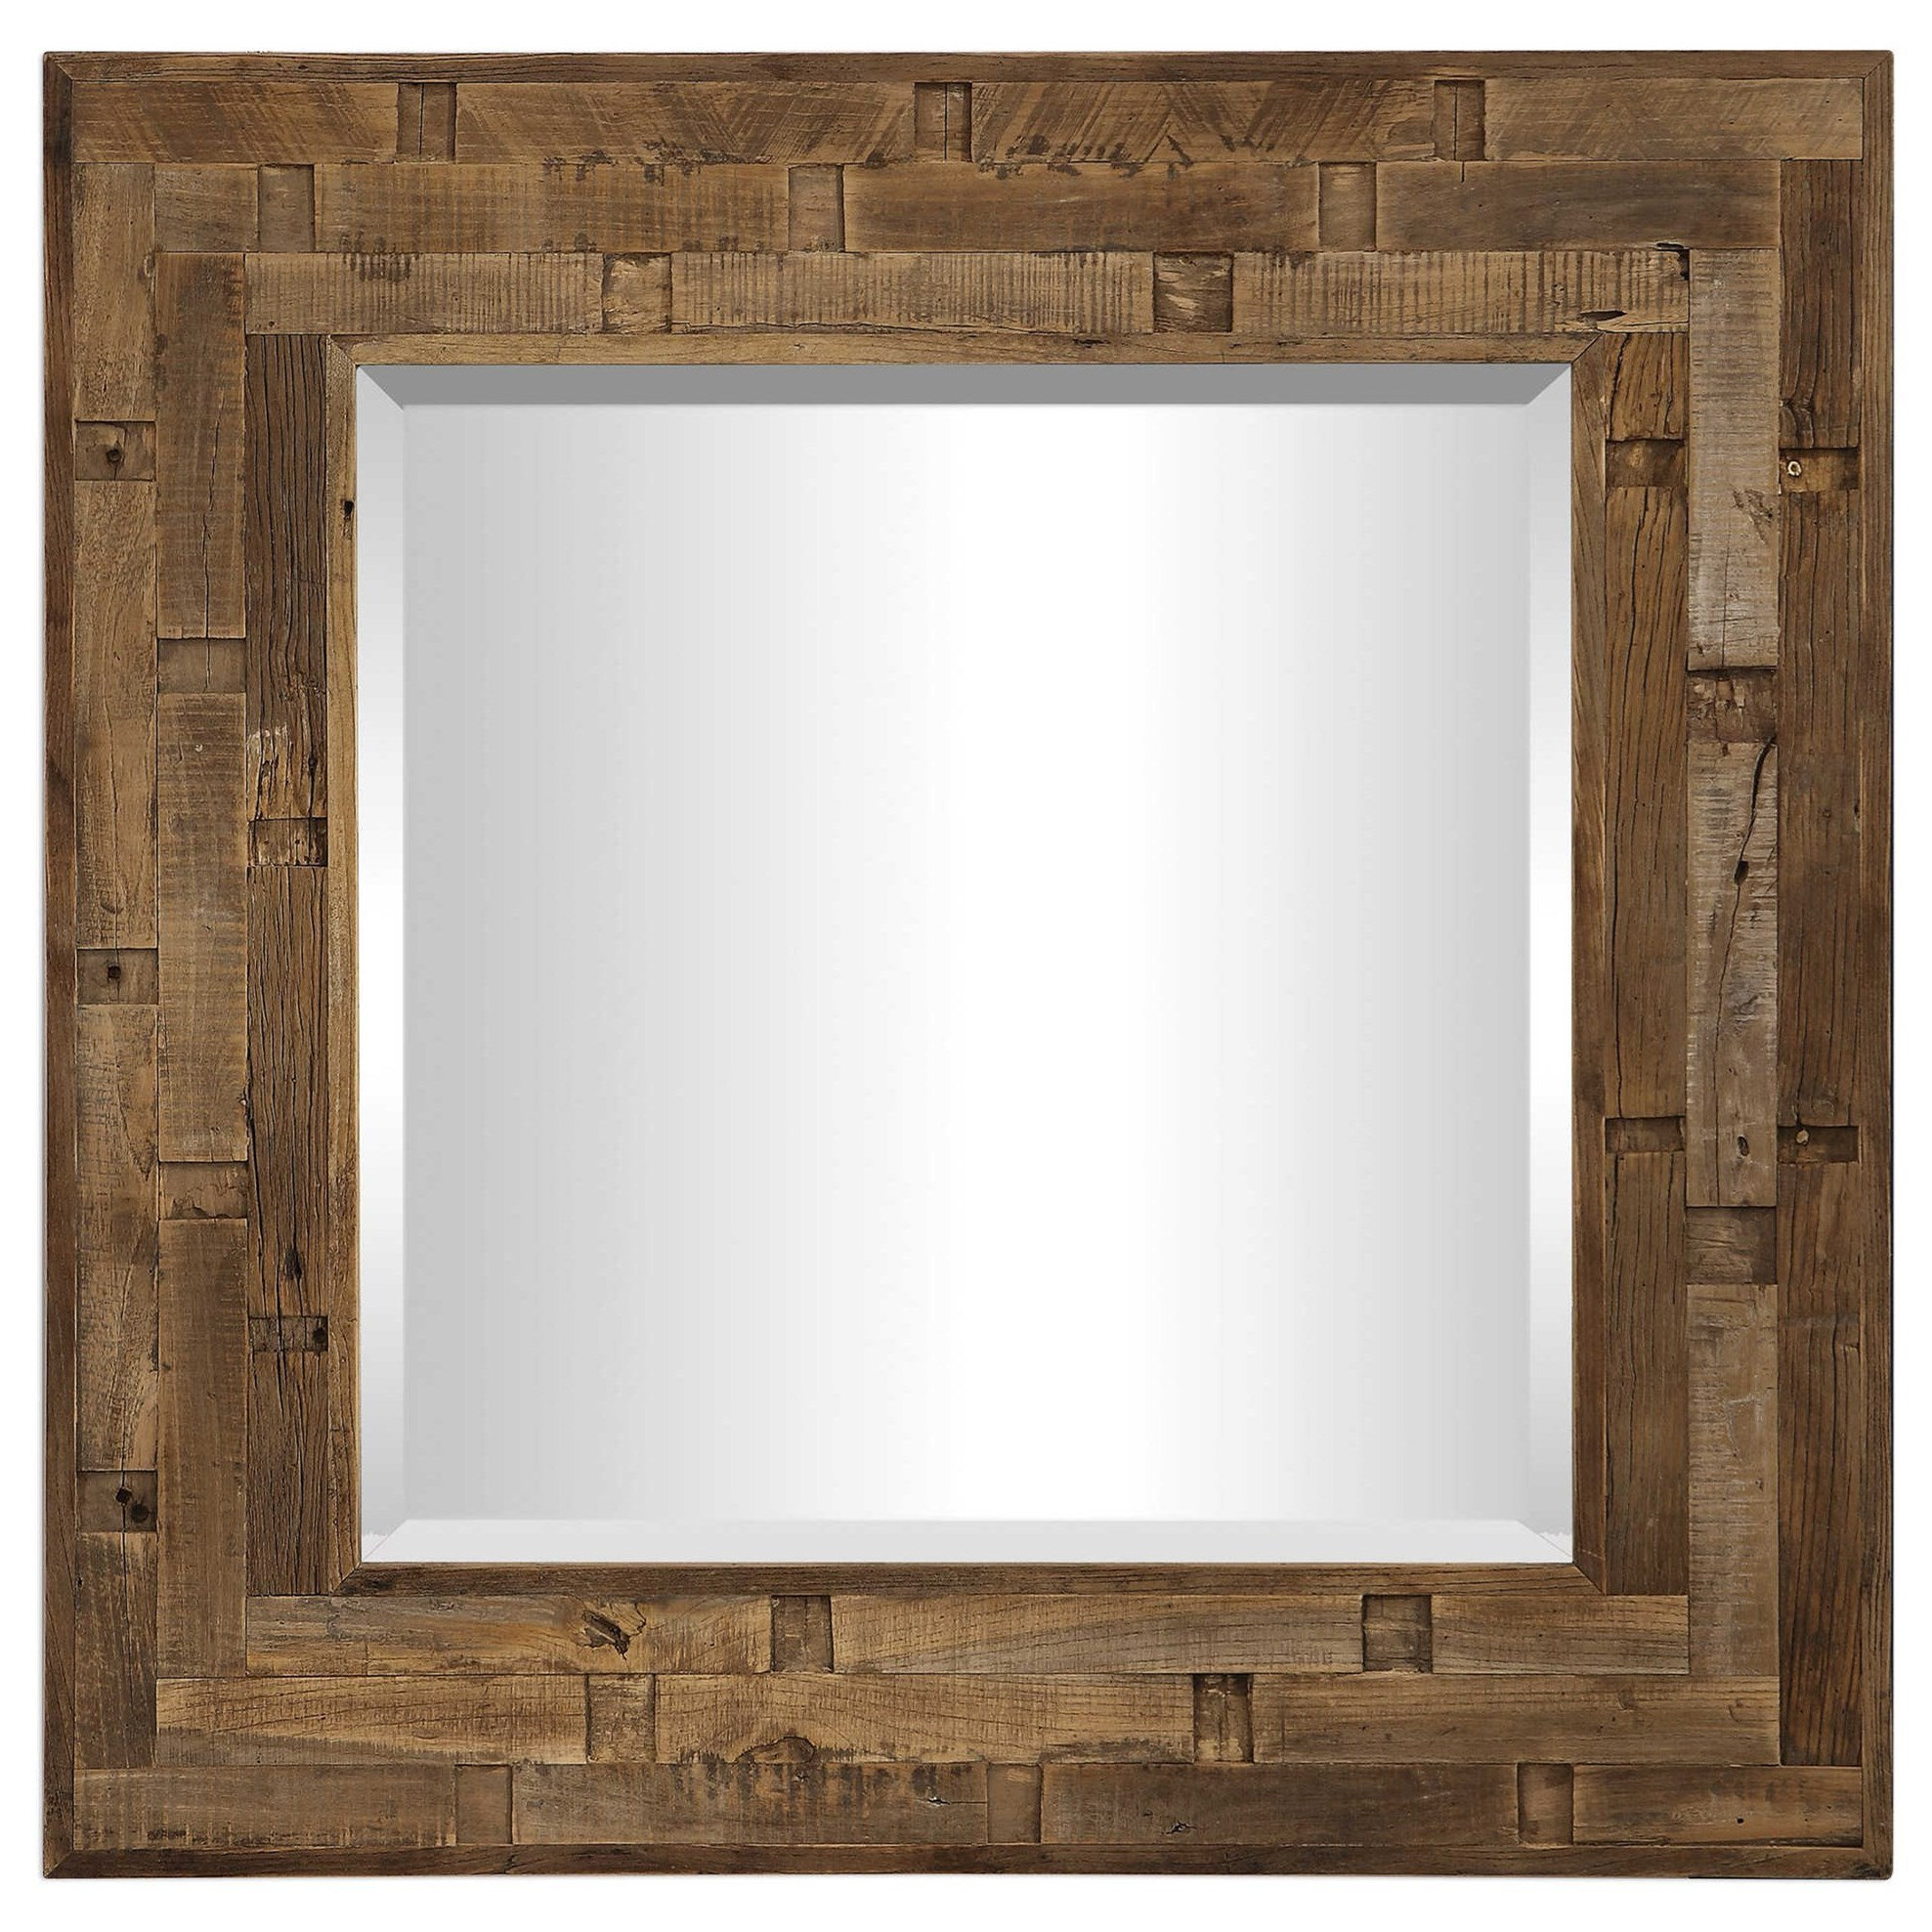 Emelin Wood Square Mirror